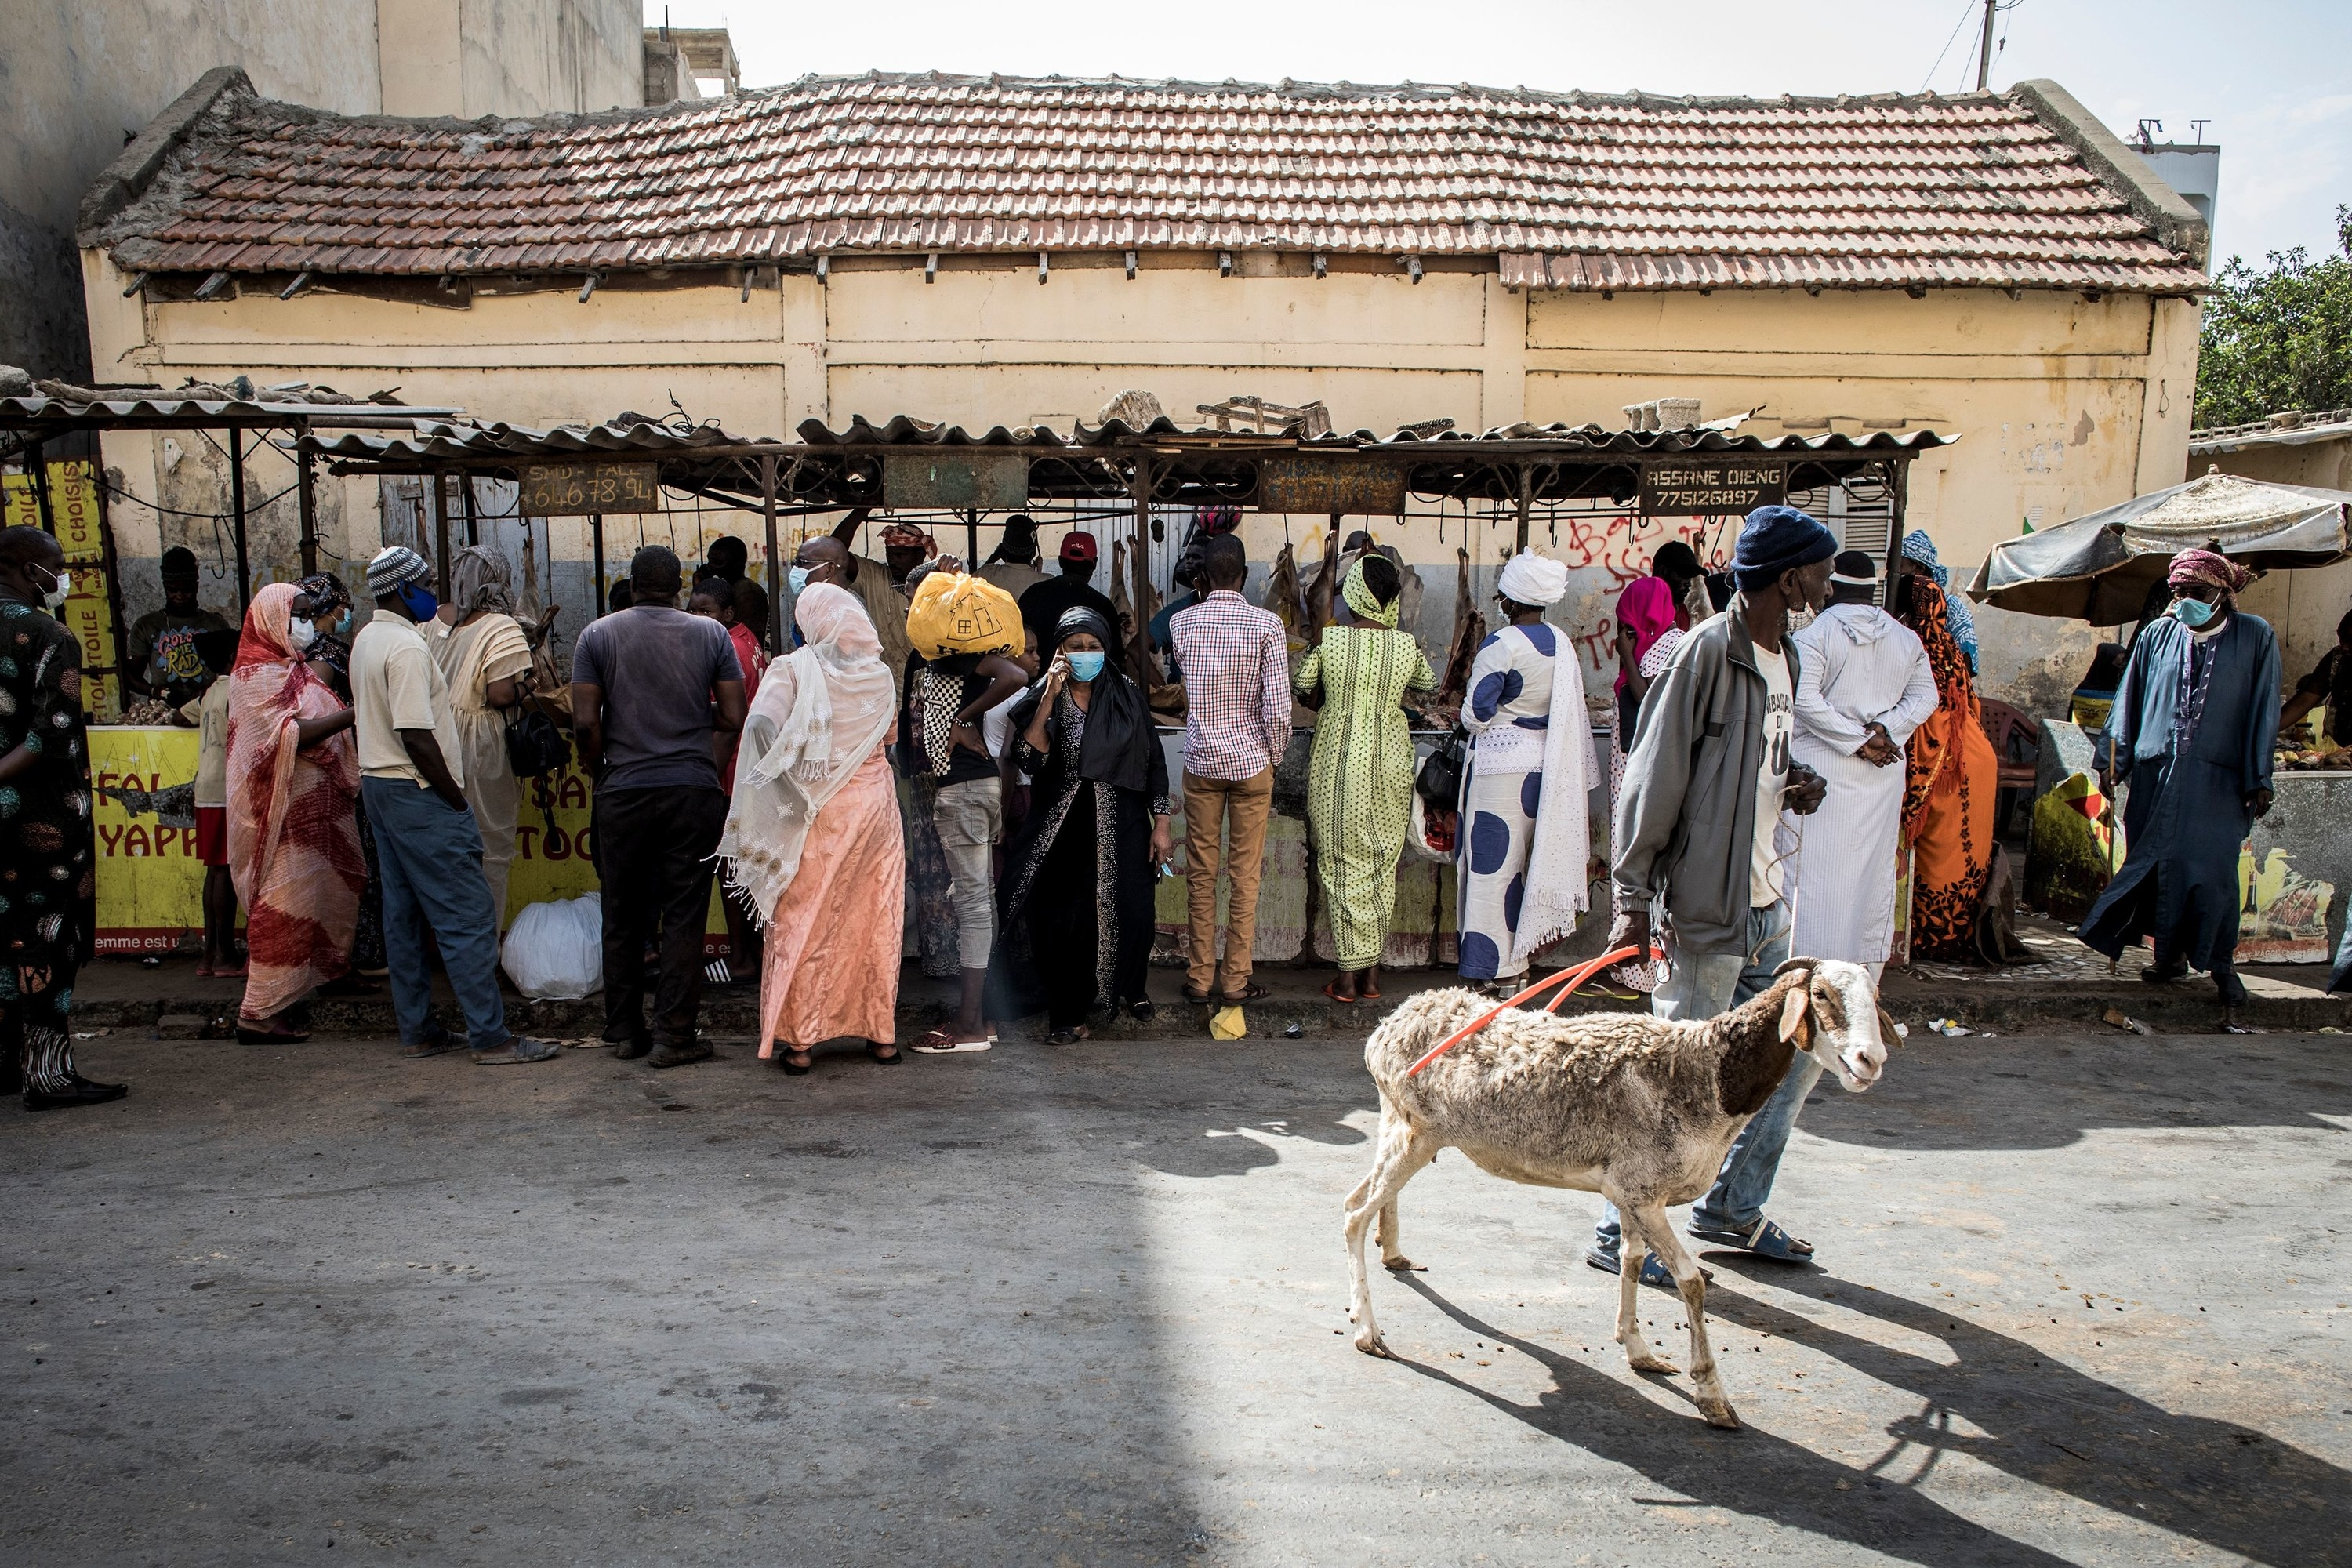 People stand in front of a stall at an outdoor market